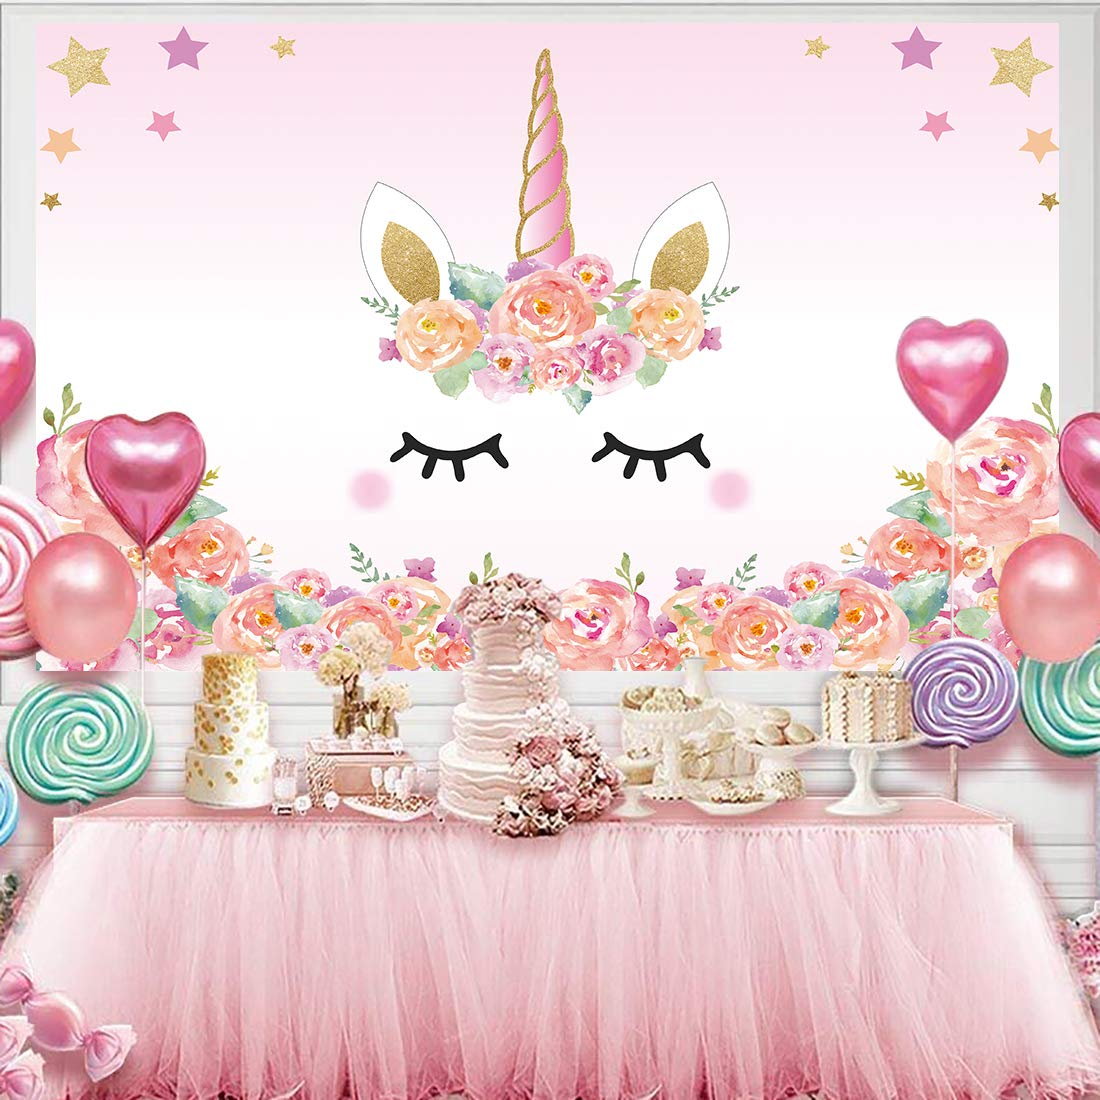 Buy Allenjoy Design 5x3ft Unicorn Theme Birthday Pink Party Backdrop For Girl Baby Shower Backdrops Background Event Decor Decorations Newborn Portrait Photography Pictures Supplies Favors Online At Low Price In India